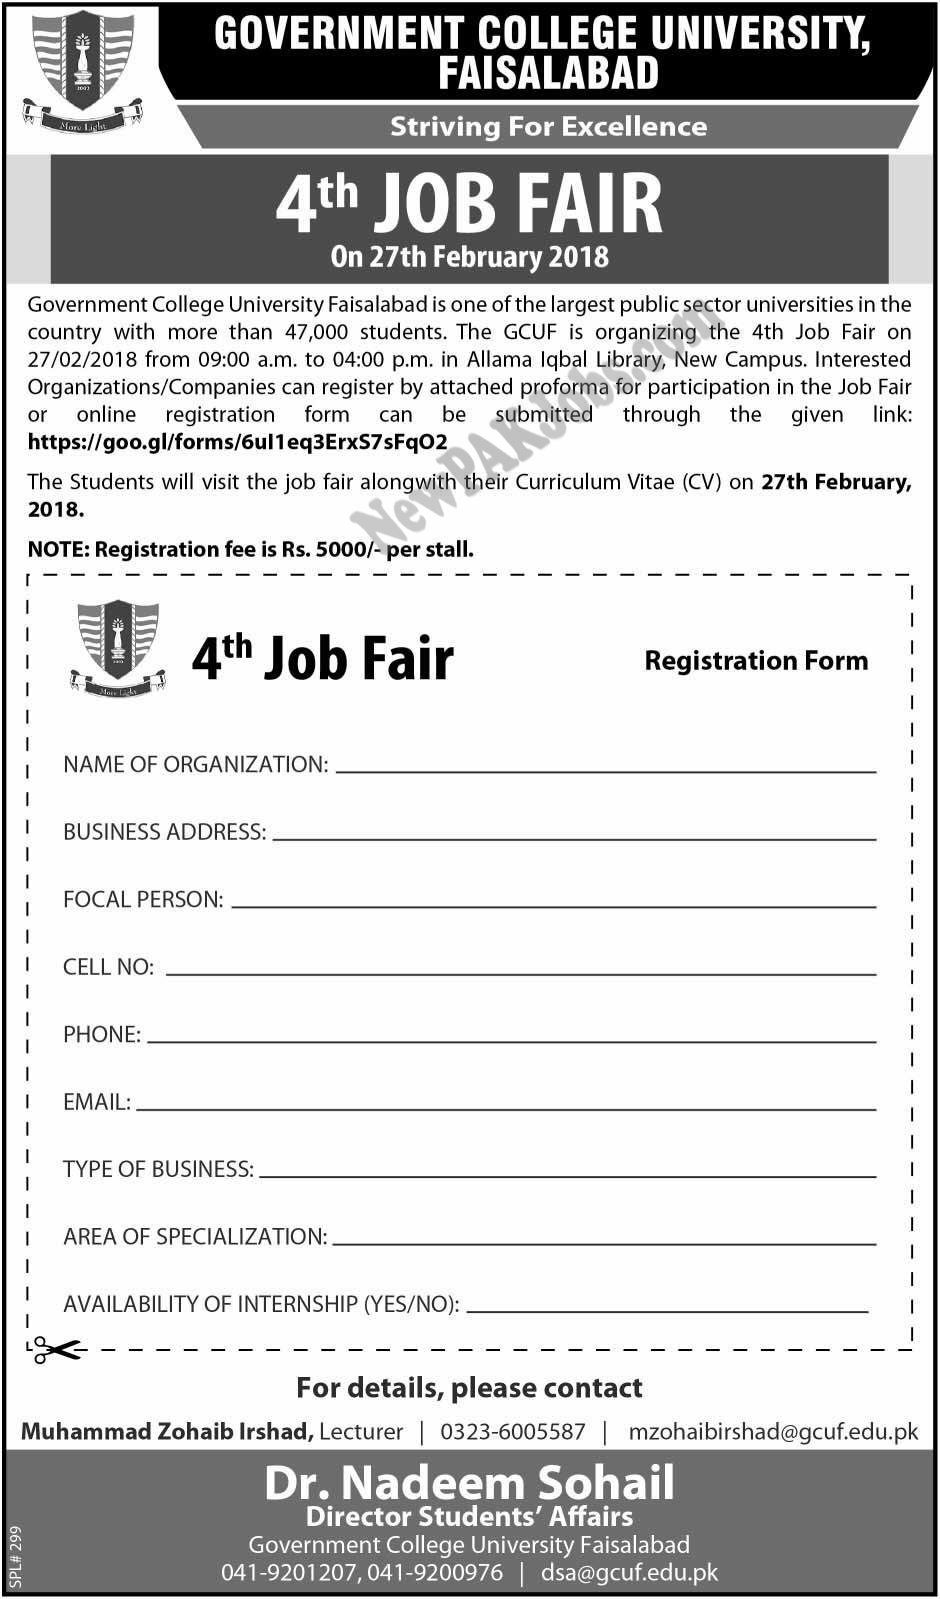 4th Jobs Fair in GC University Faisalabad Last Date 27 February 2018, Form Submit